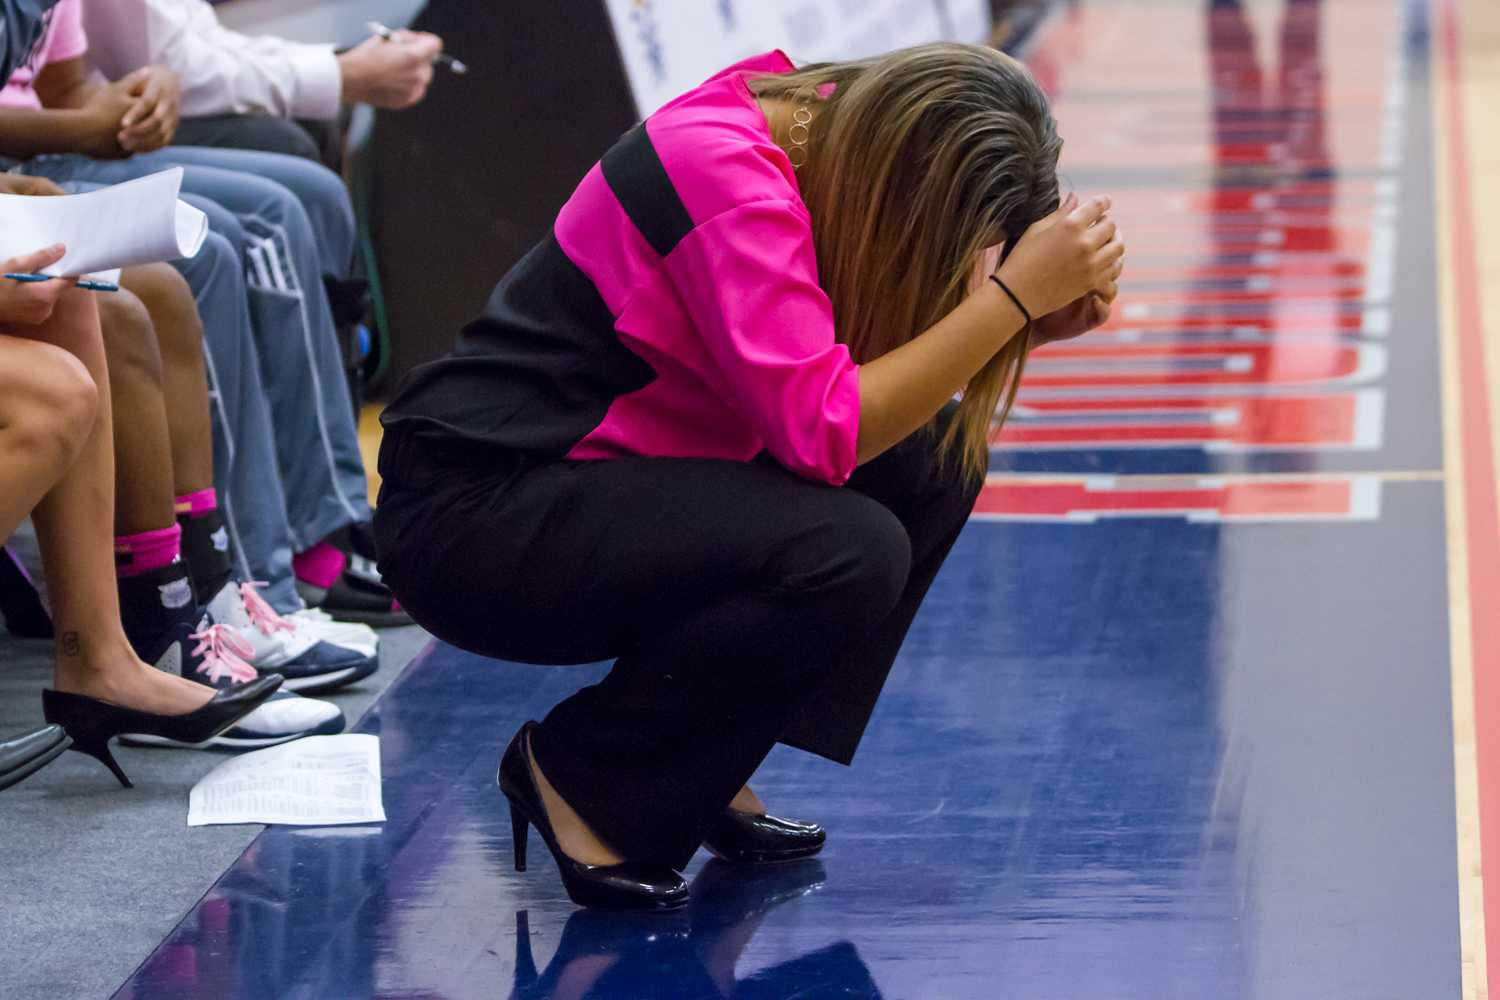 Head coach Kellie Lewis-Jay shows her disappointment after what she thought was a bad call.